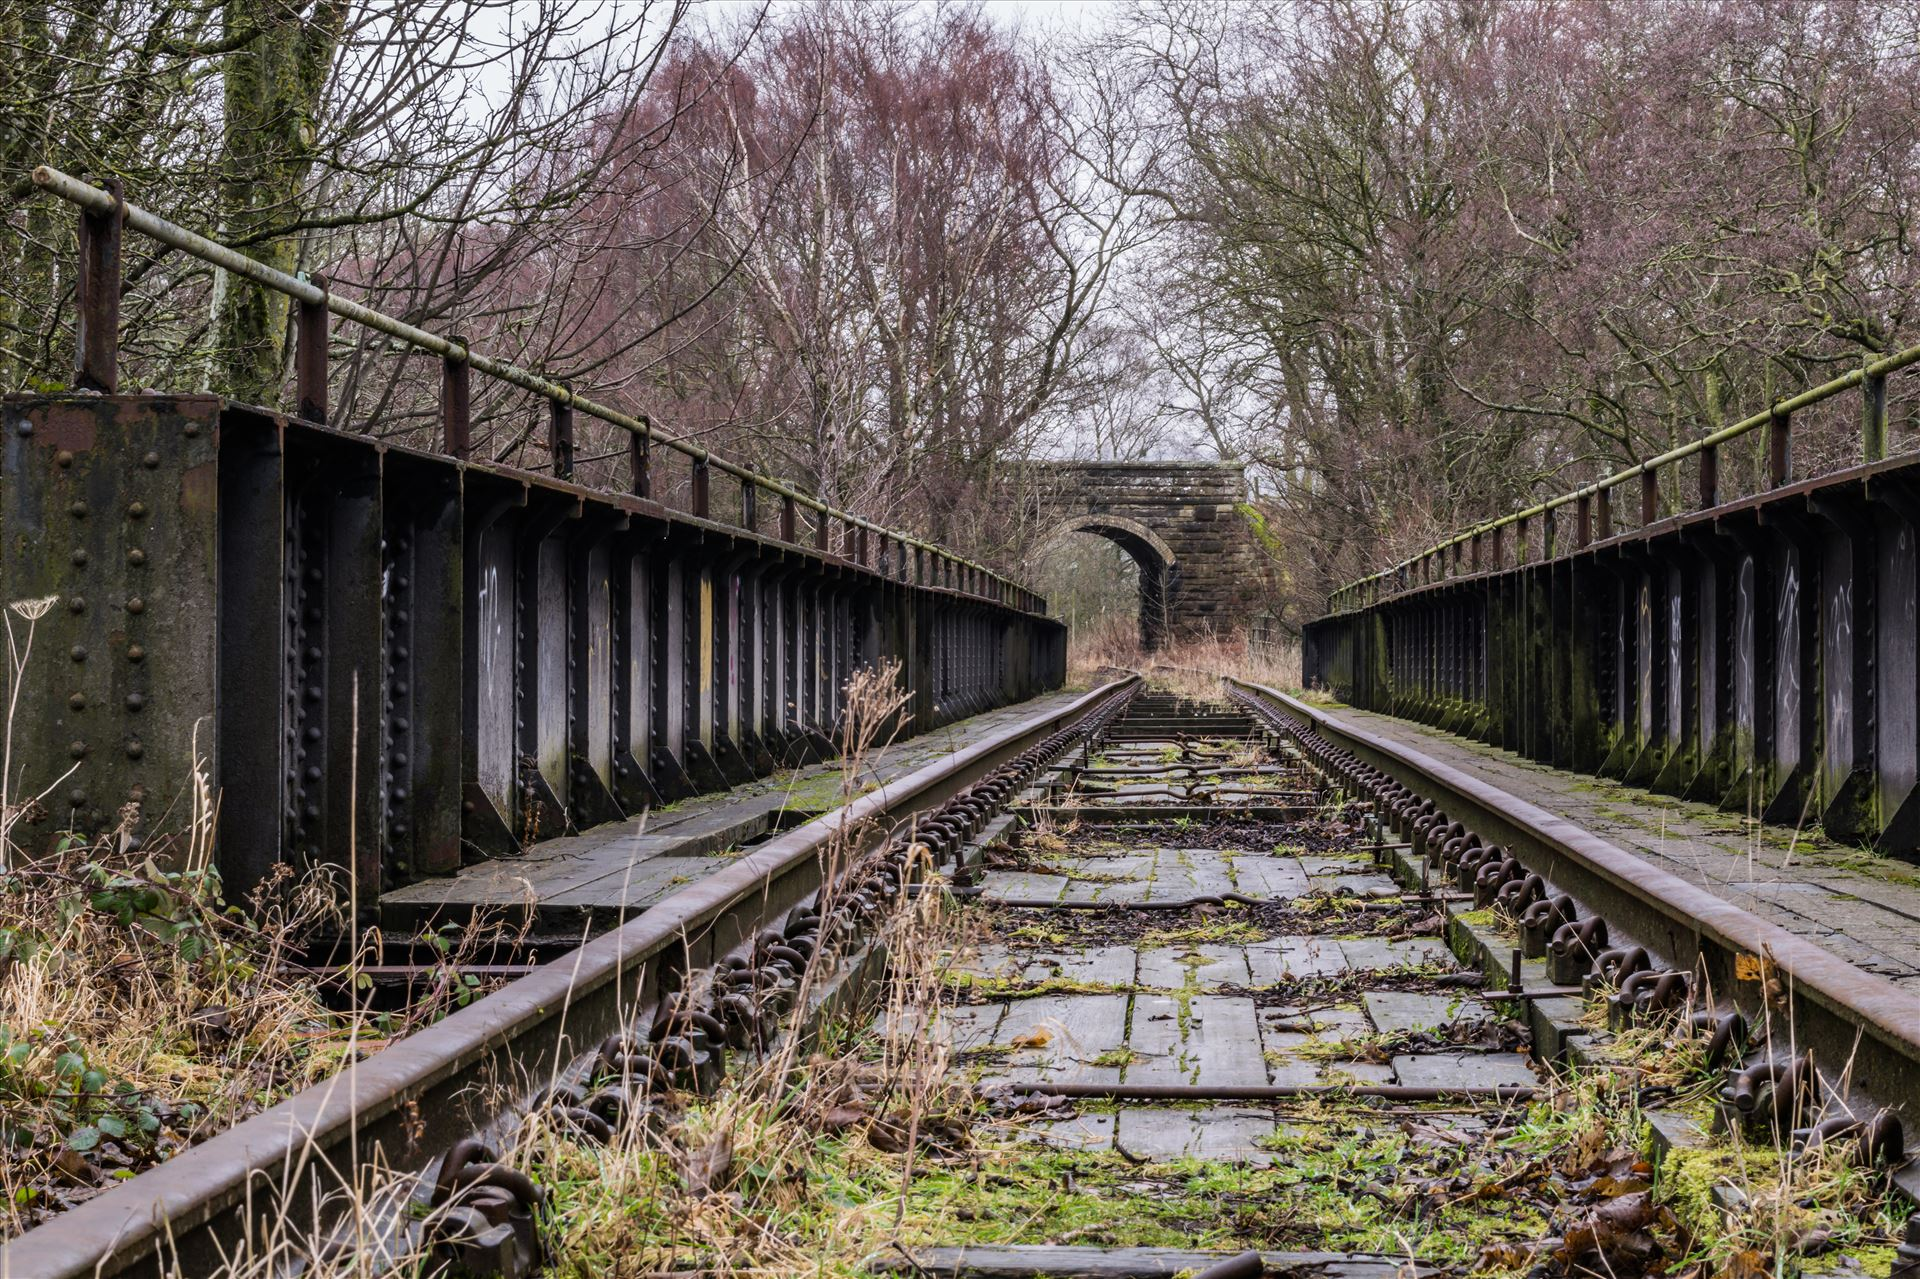 Abandoned Railway Bridge - Taken on 11/01/18 near Stanhope by AJ Stoves Photography